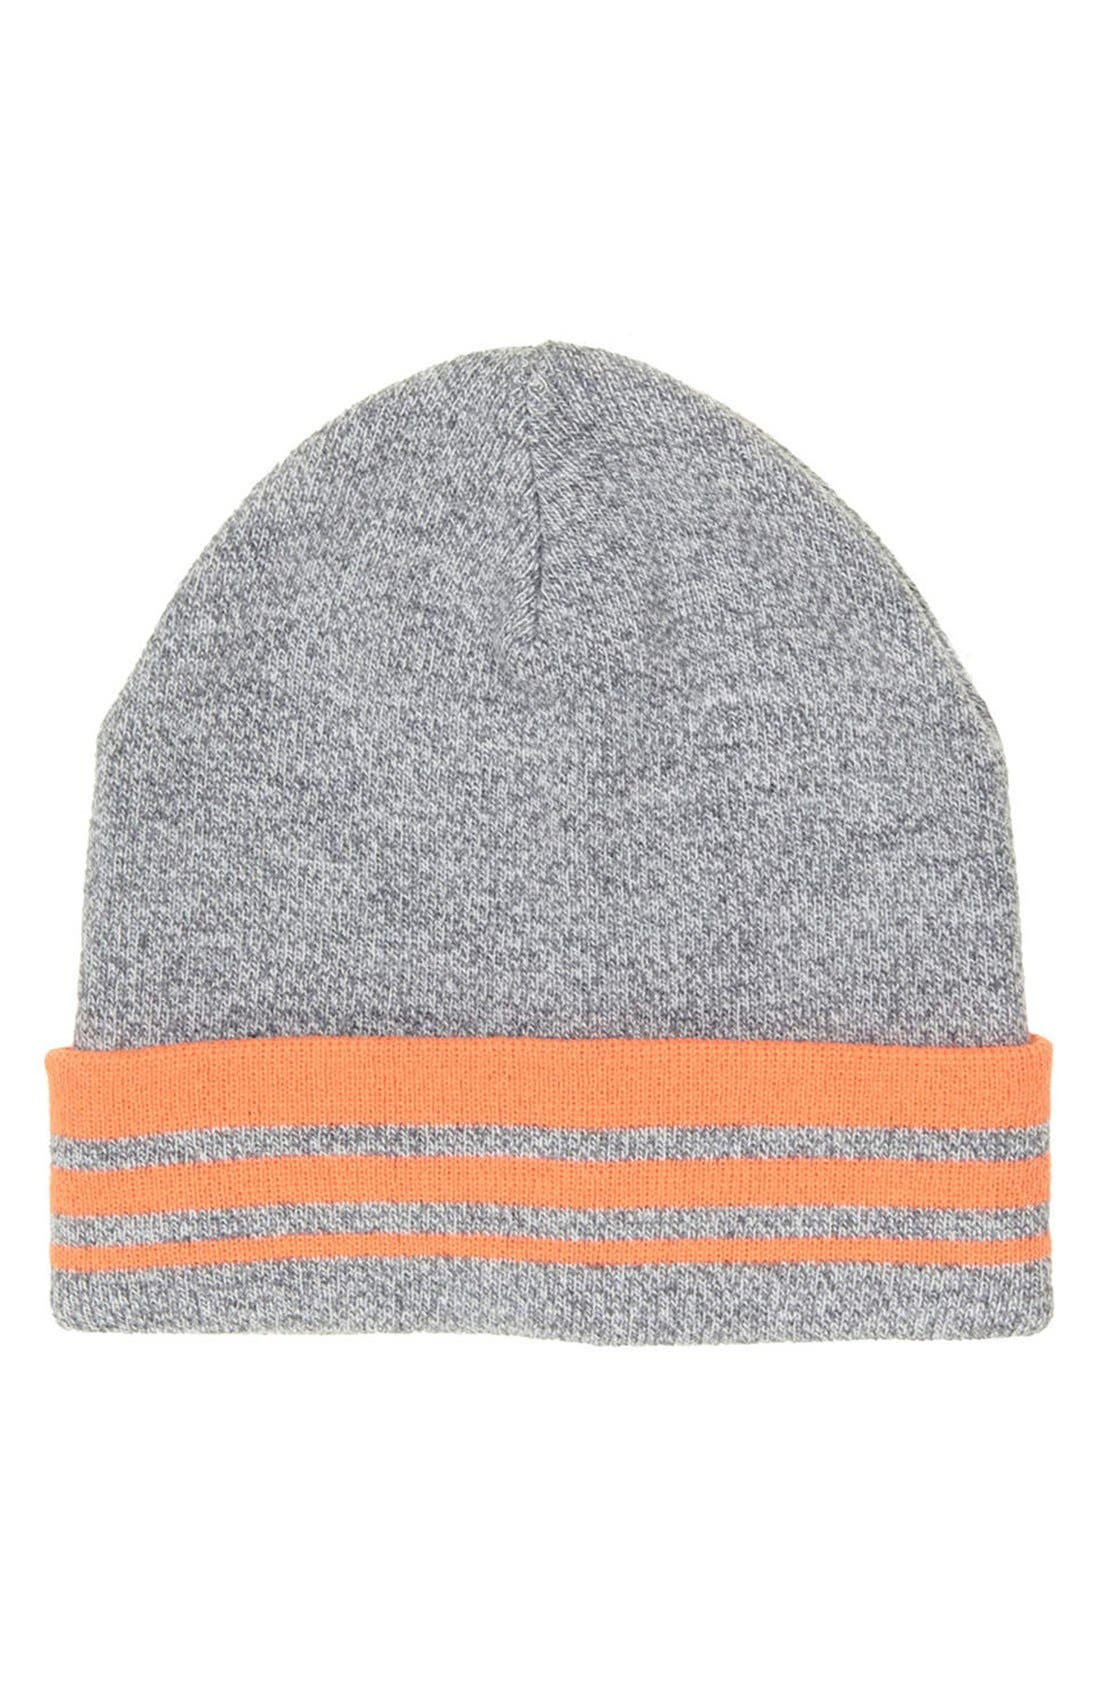 Alternate Image 1 Selected - Topshop Stripe Beanie